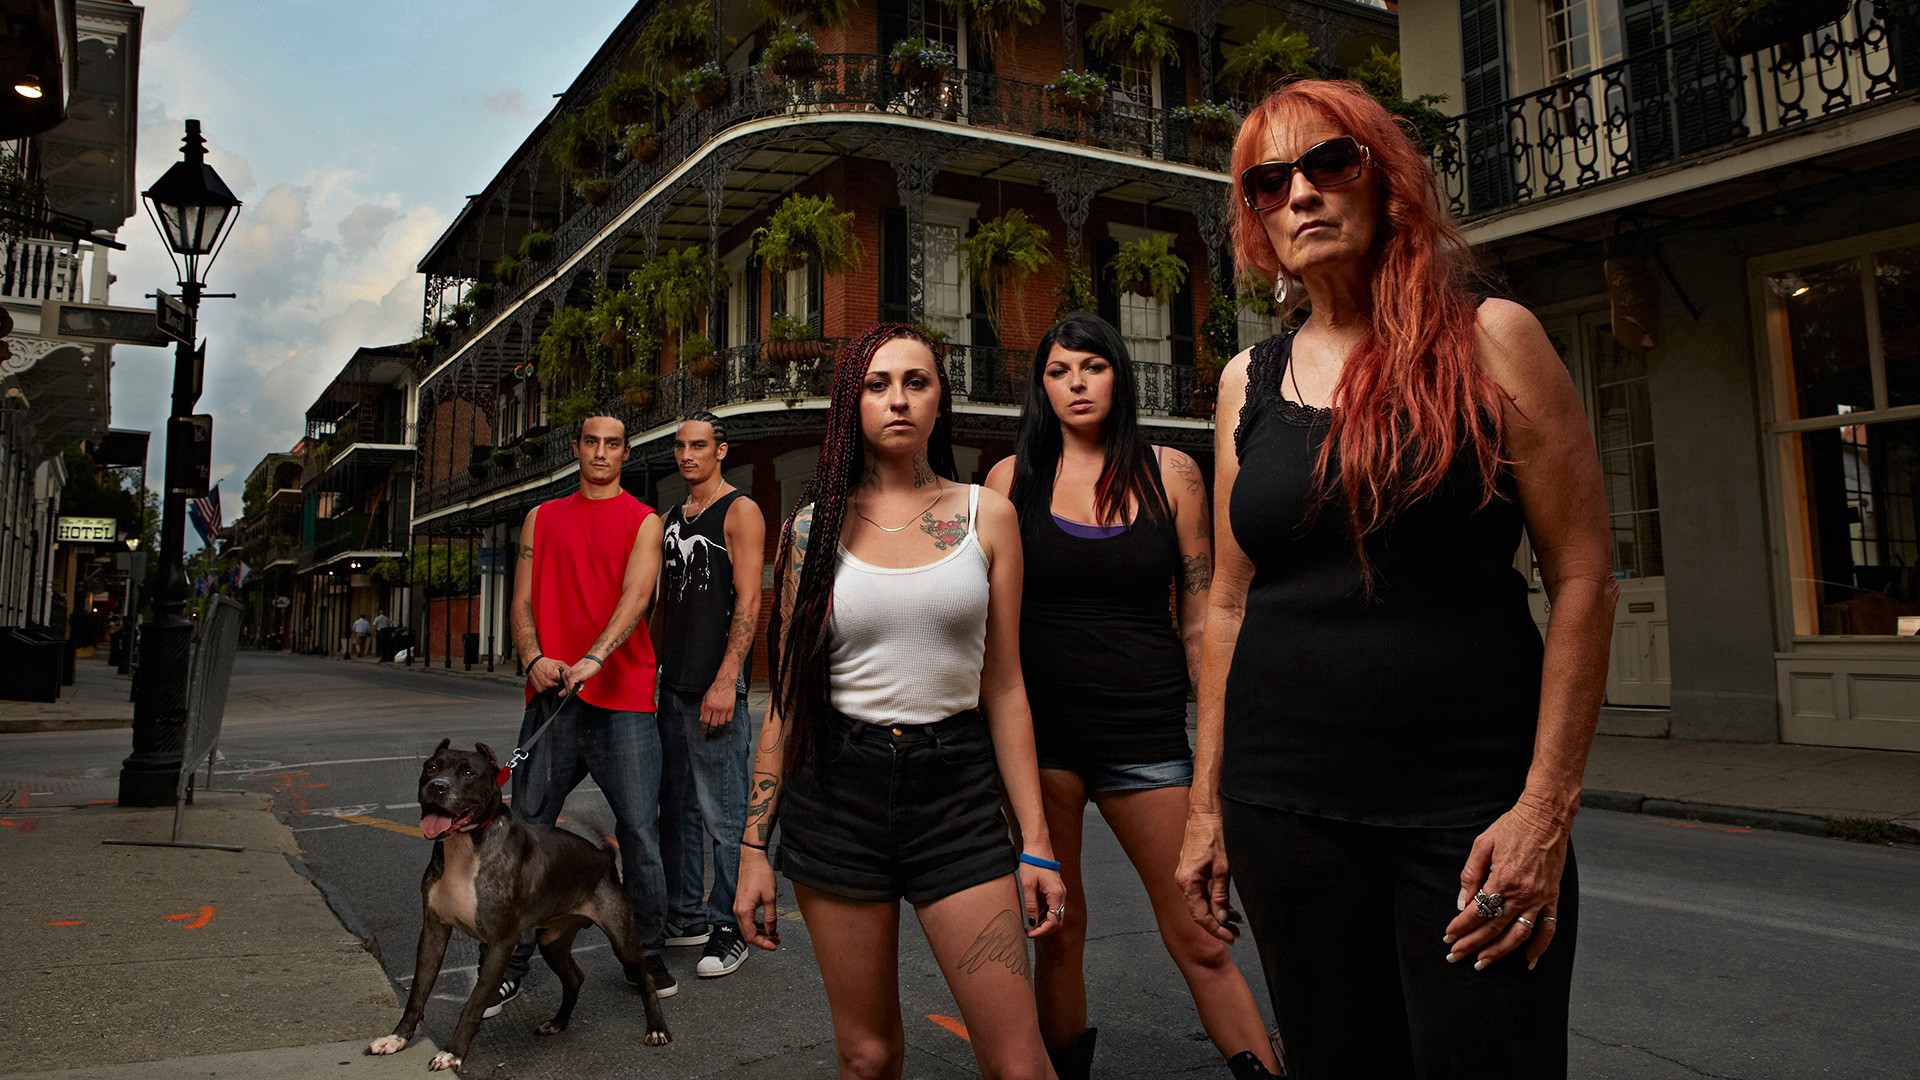 Watch Pit Bulls And Parolees Season 16 Eps 5 Online 2020 Free By Rvici Caqivya Aug 2020 Medium